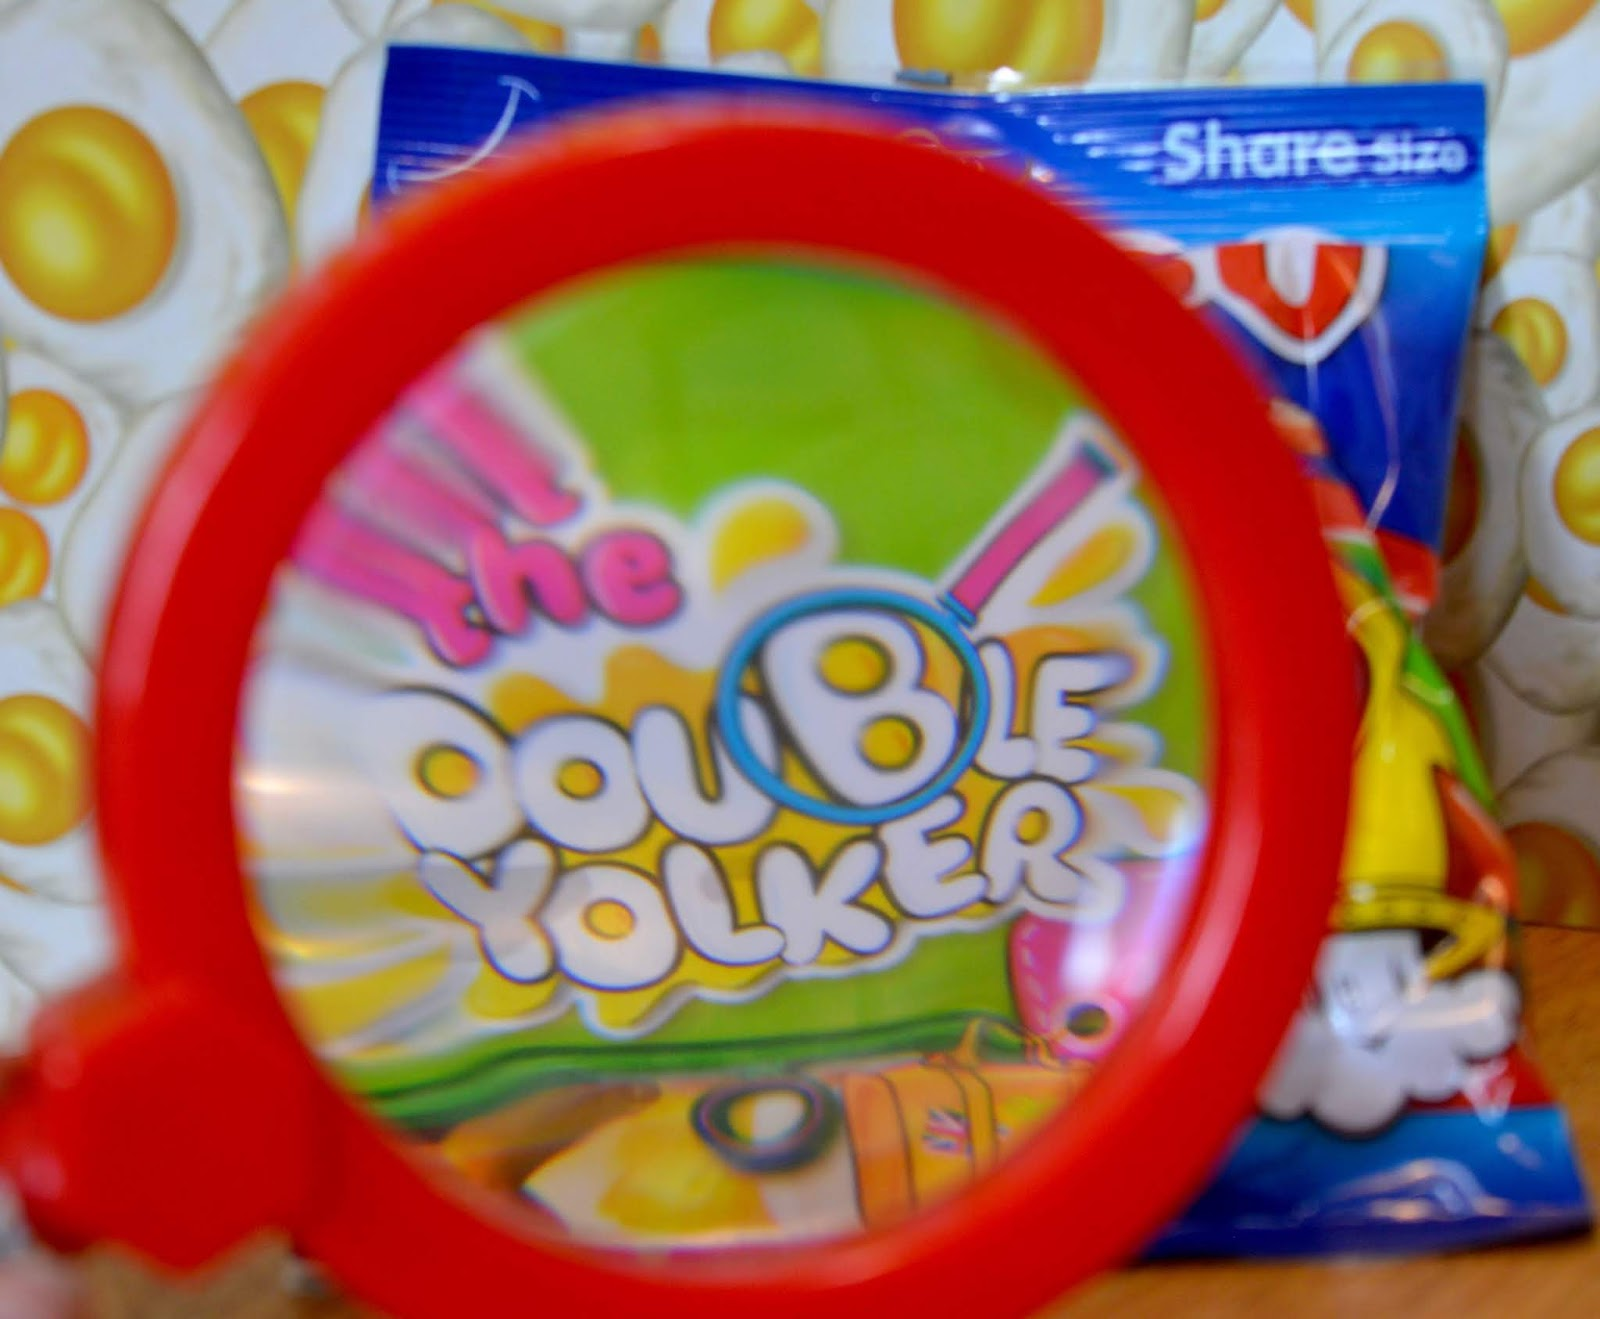 'Hunt the Double Yolker' with HARIBO for your chance to WIN 1 in 20 Forest Holidays